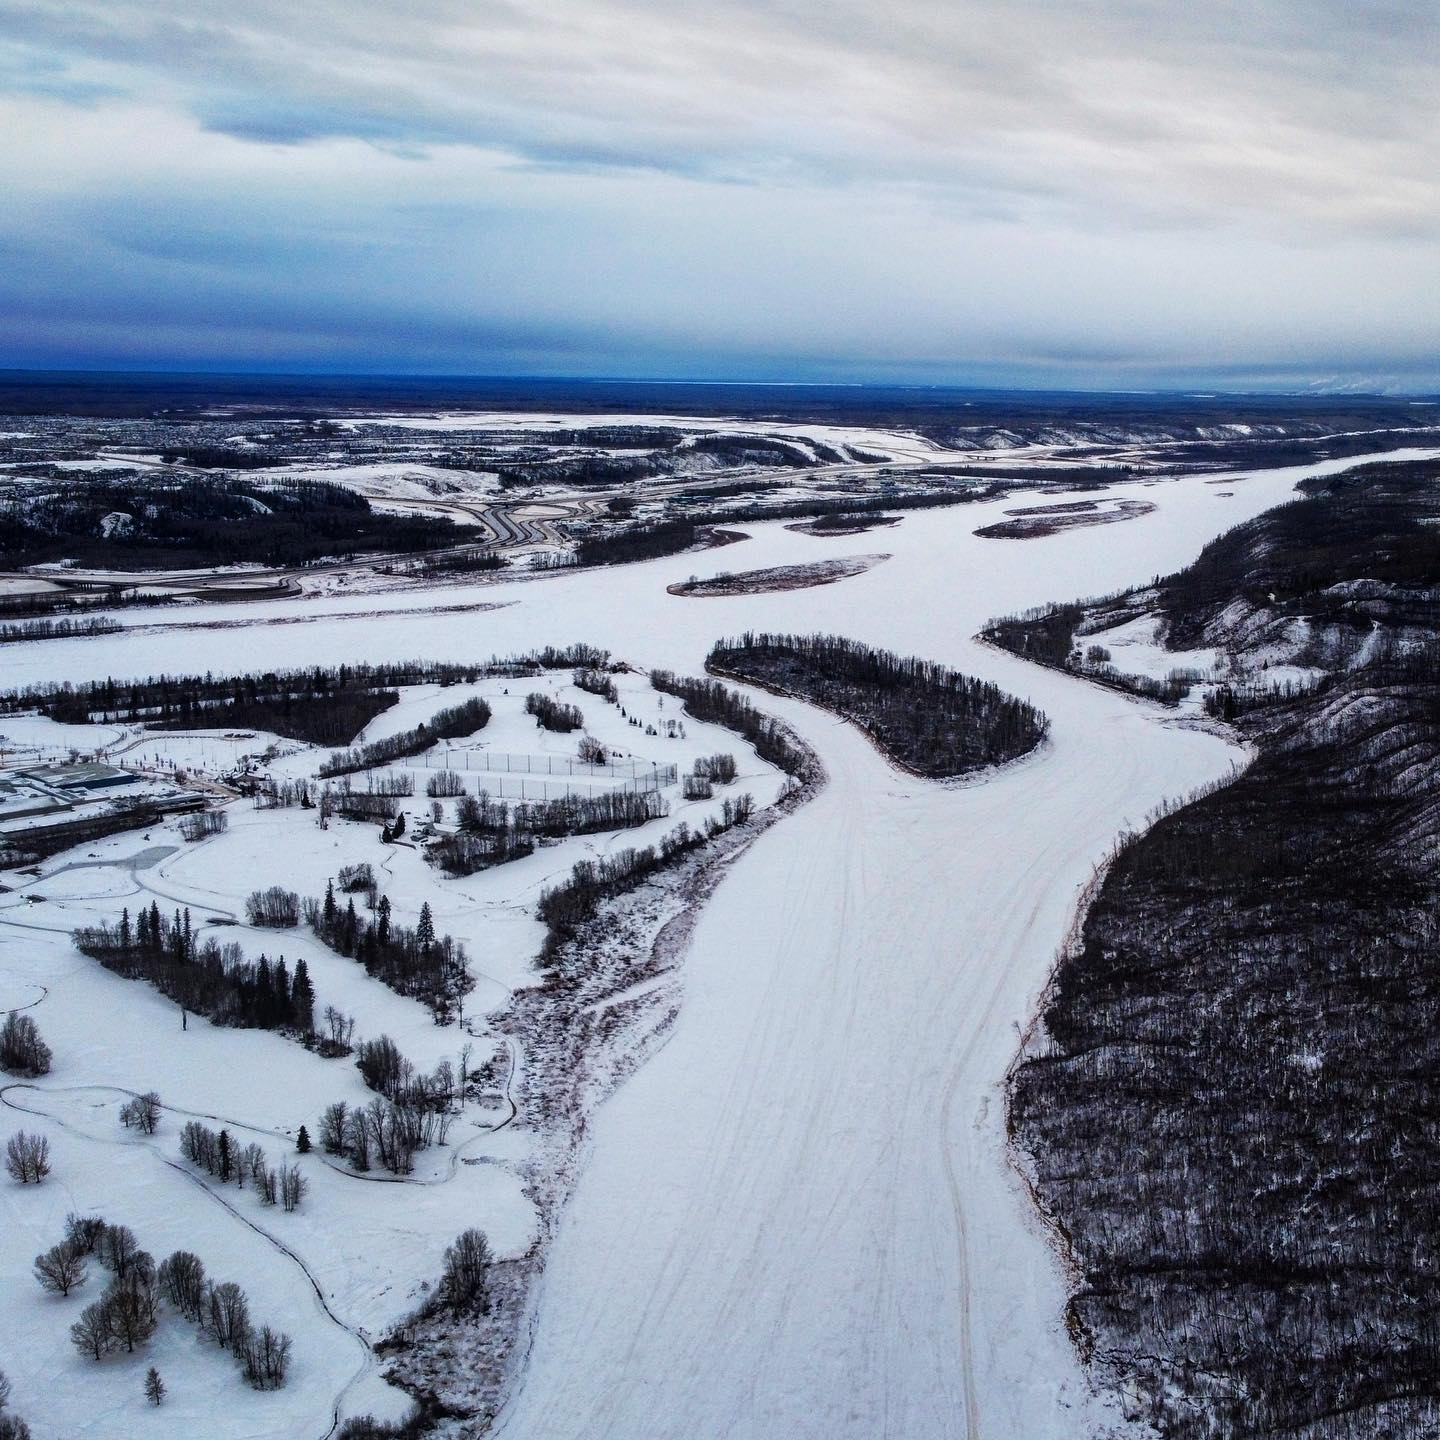 In between the snow and rain today, I managed to snap this drone photo from Snye Point, looking North towards the Athabaskan River.  #ymm #mavic